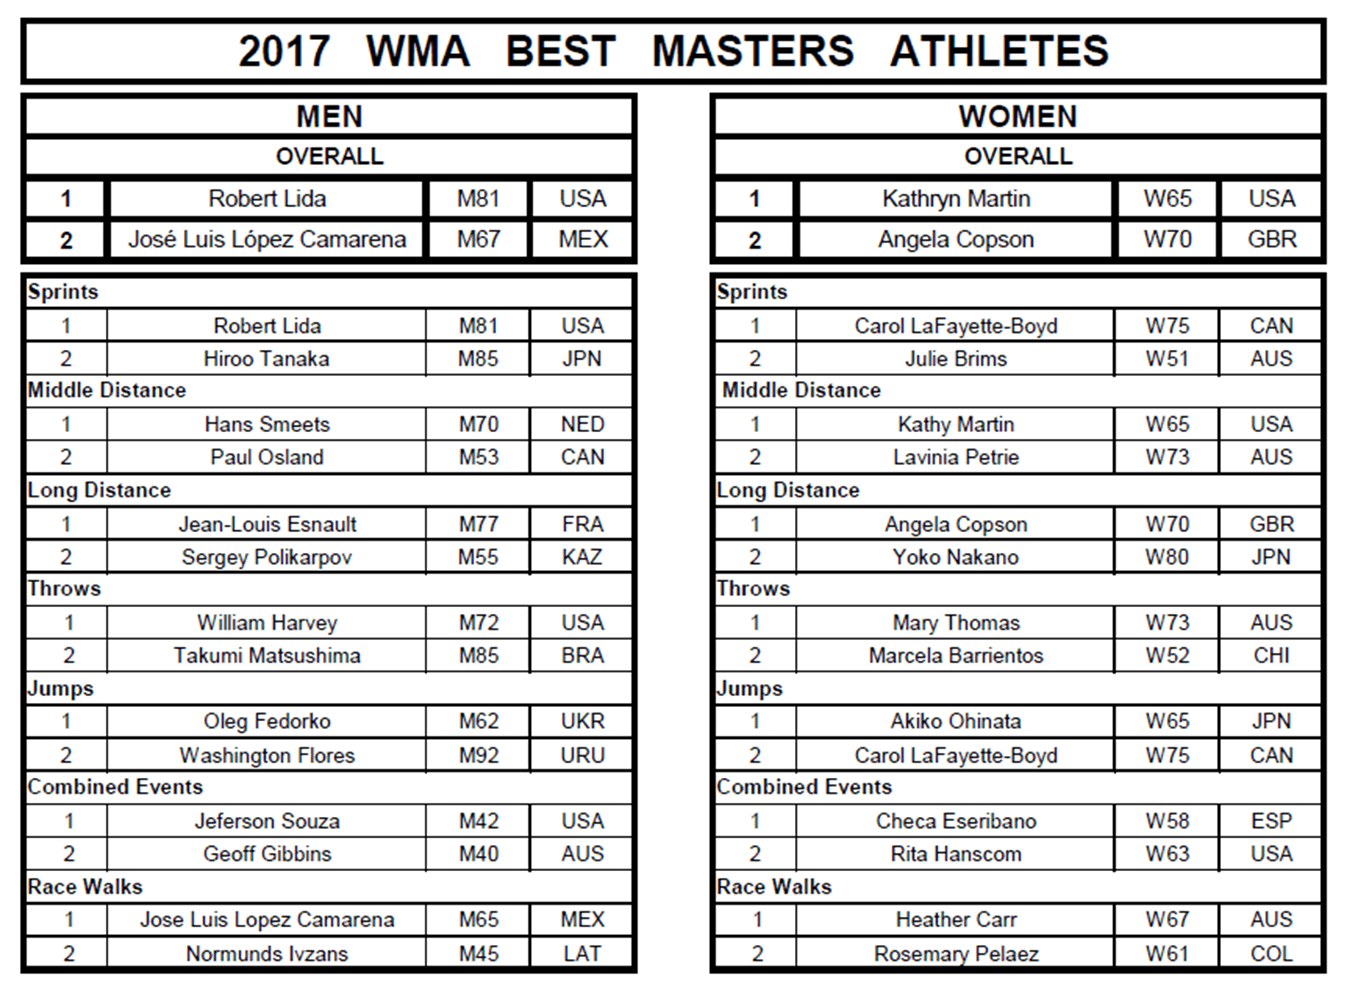 2017 Athletes of the Year, World Masters Athletics